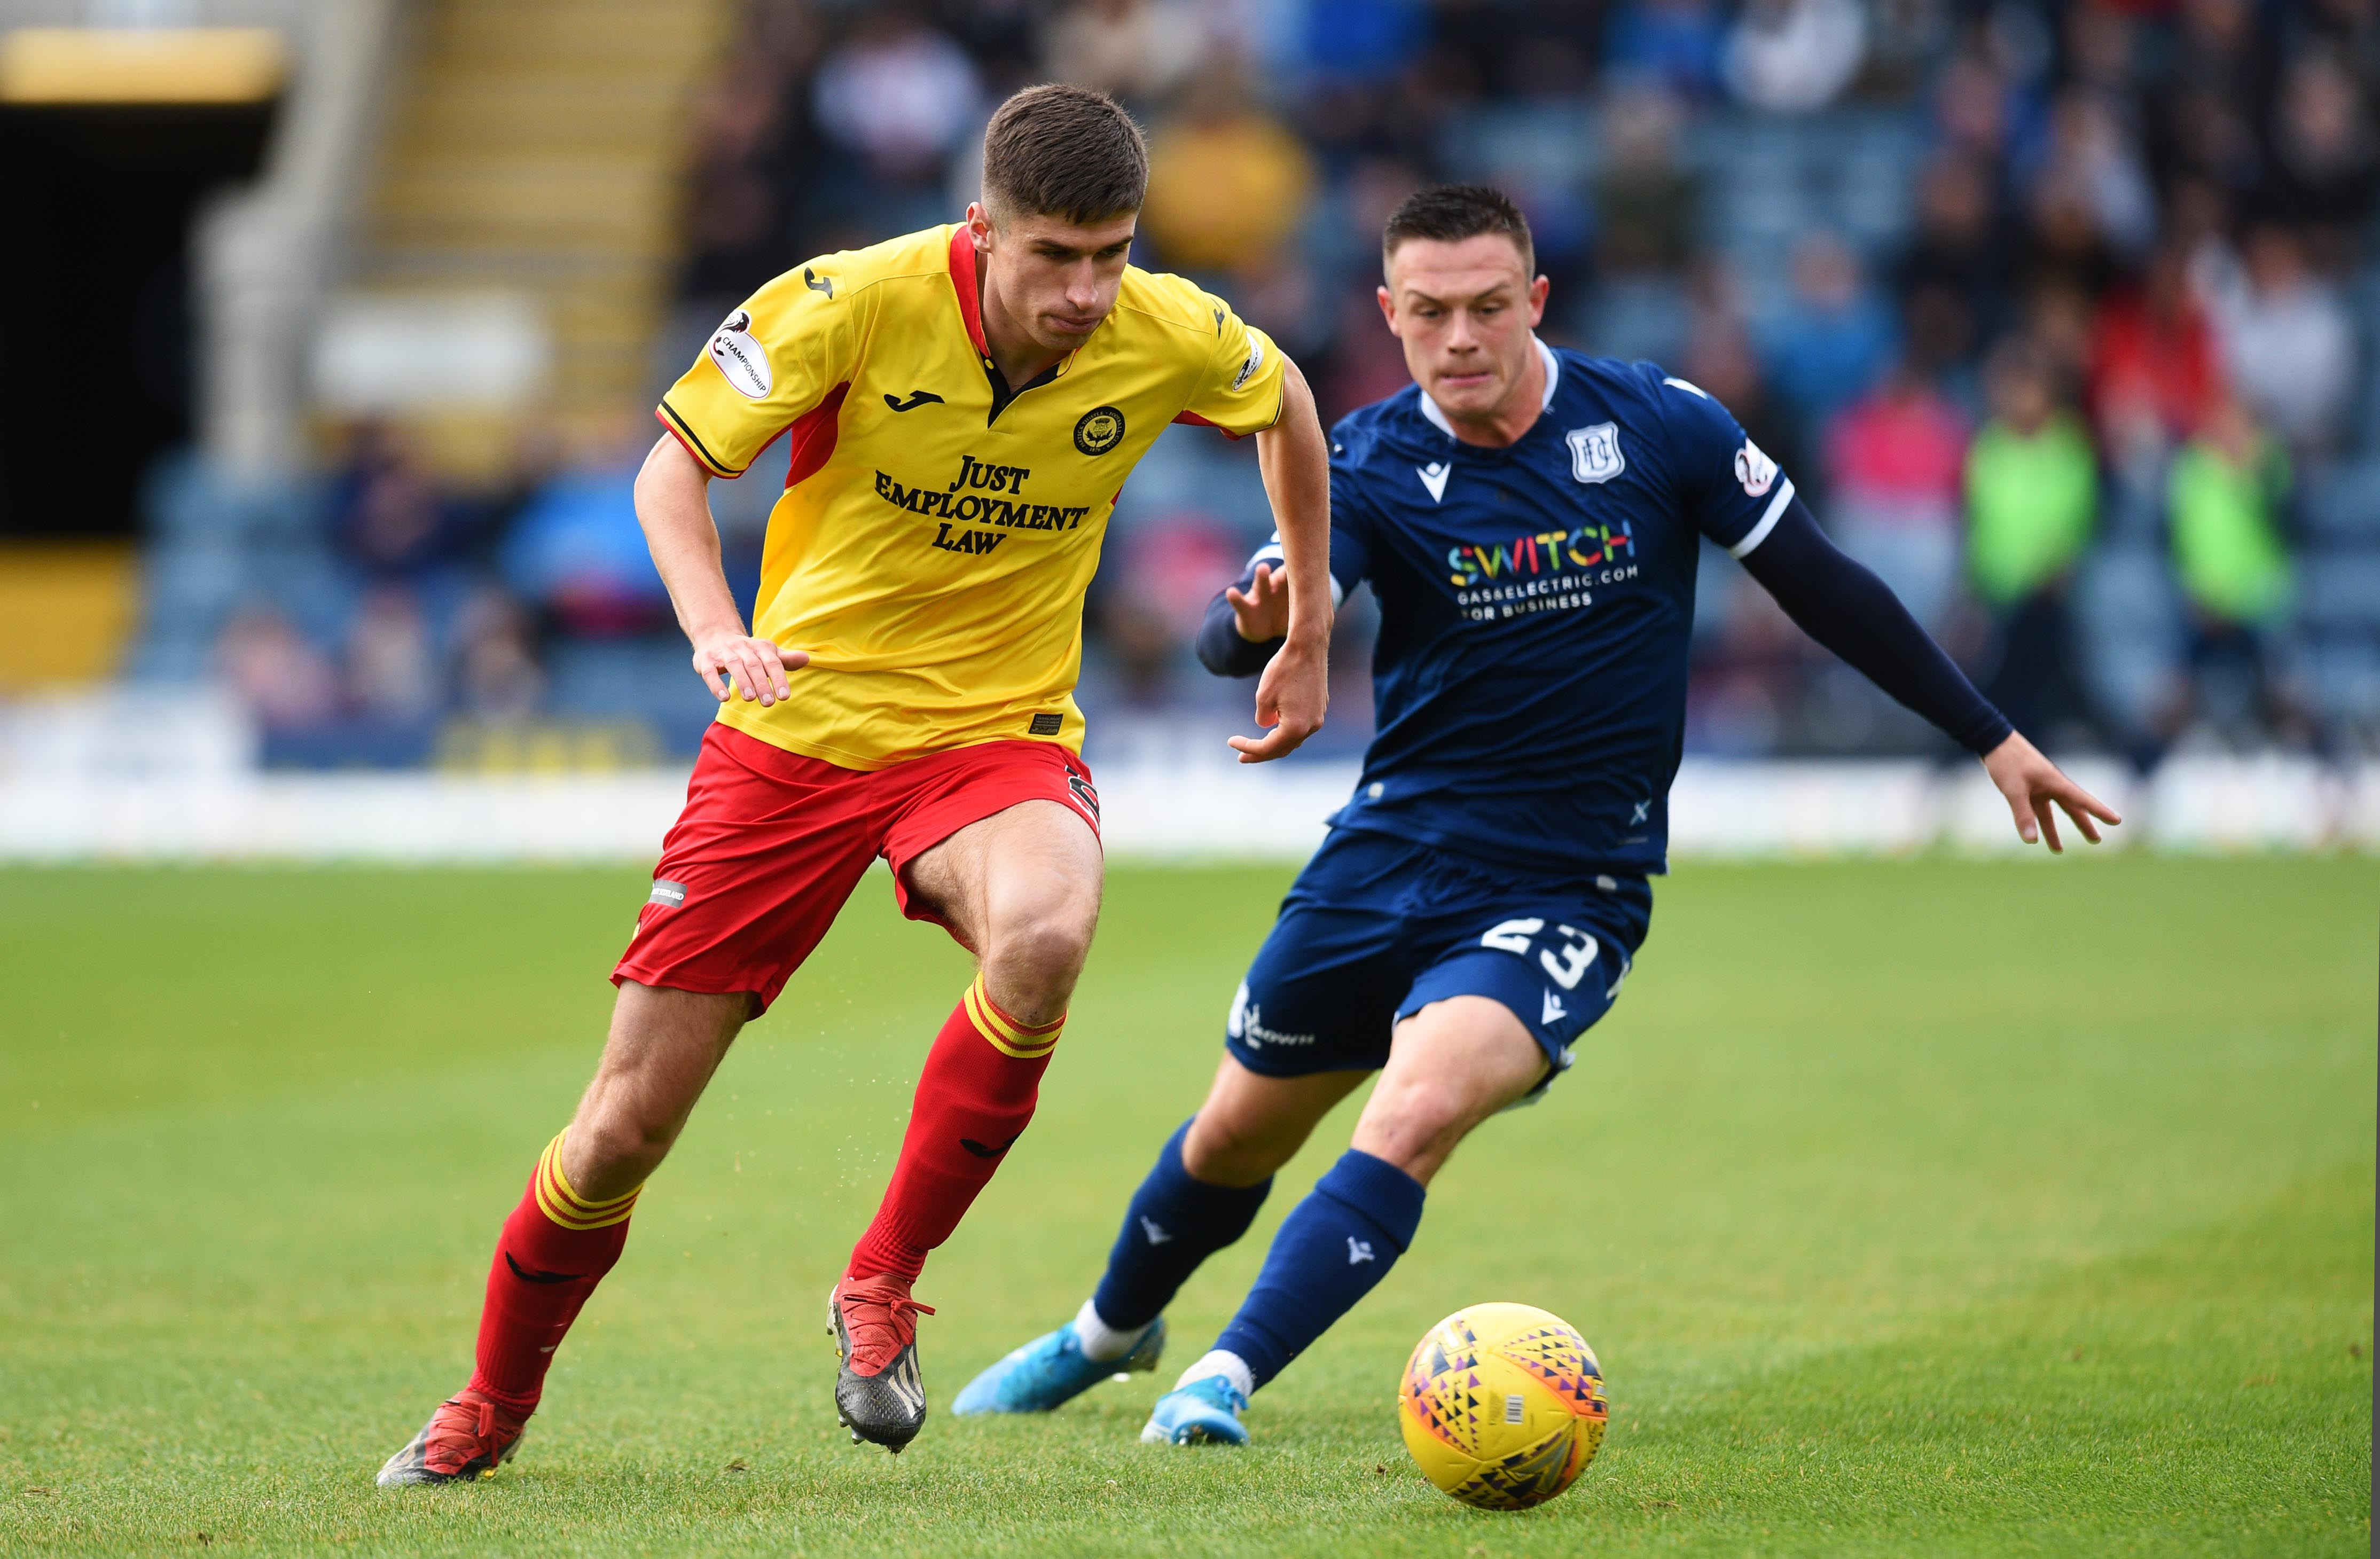 Jordan Marshall chases down Partick's Ryan Williamson.